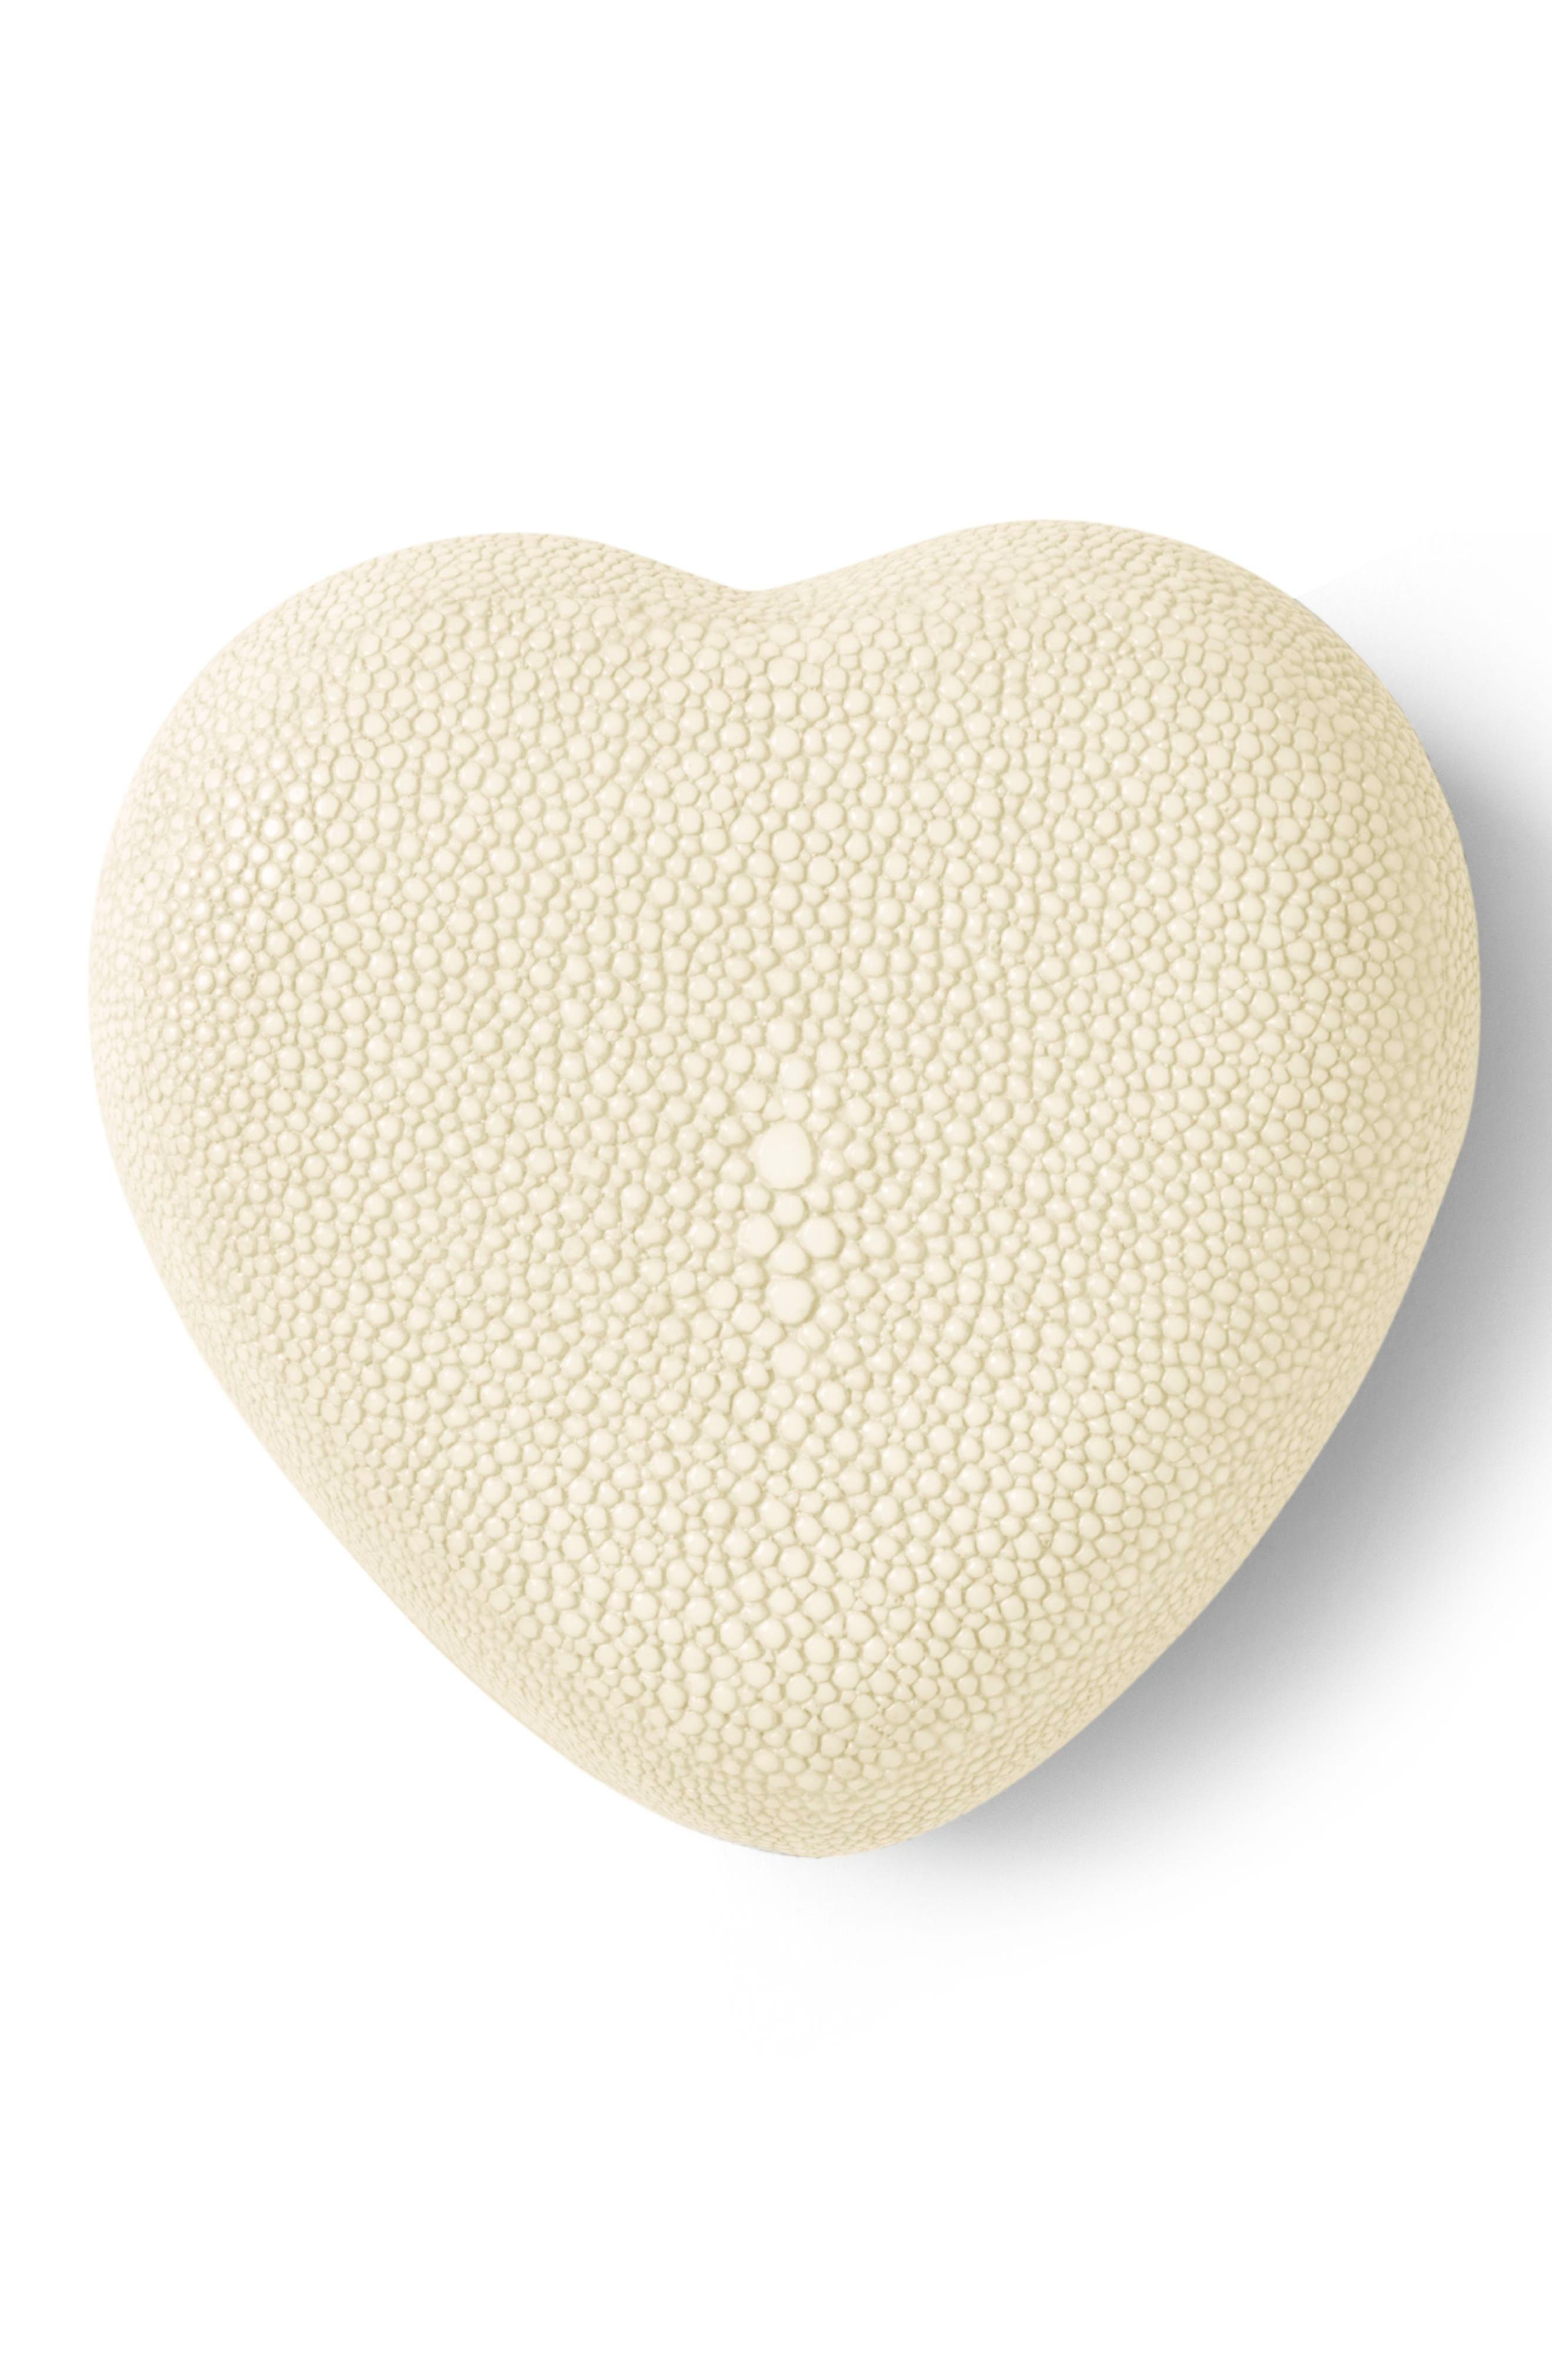 Shagreen Heart Box,                             Main thumbnail 1, color,                             900